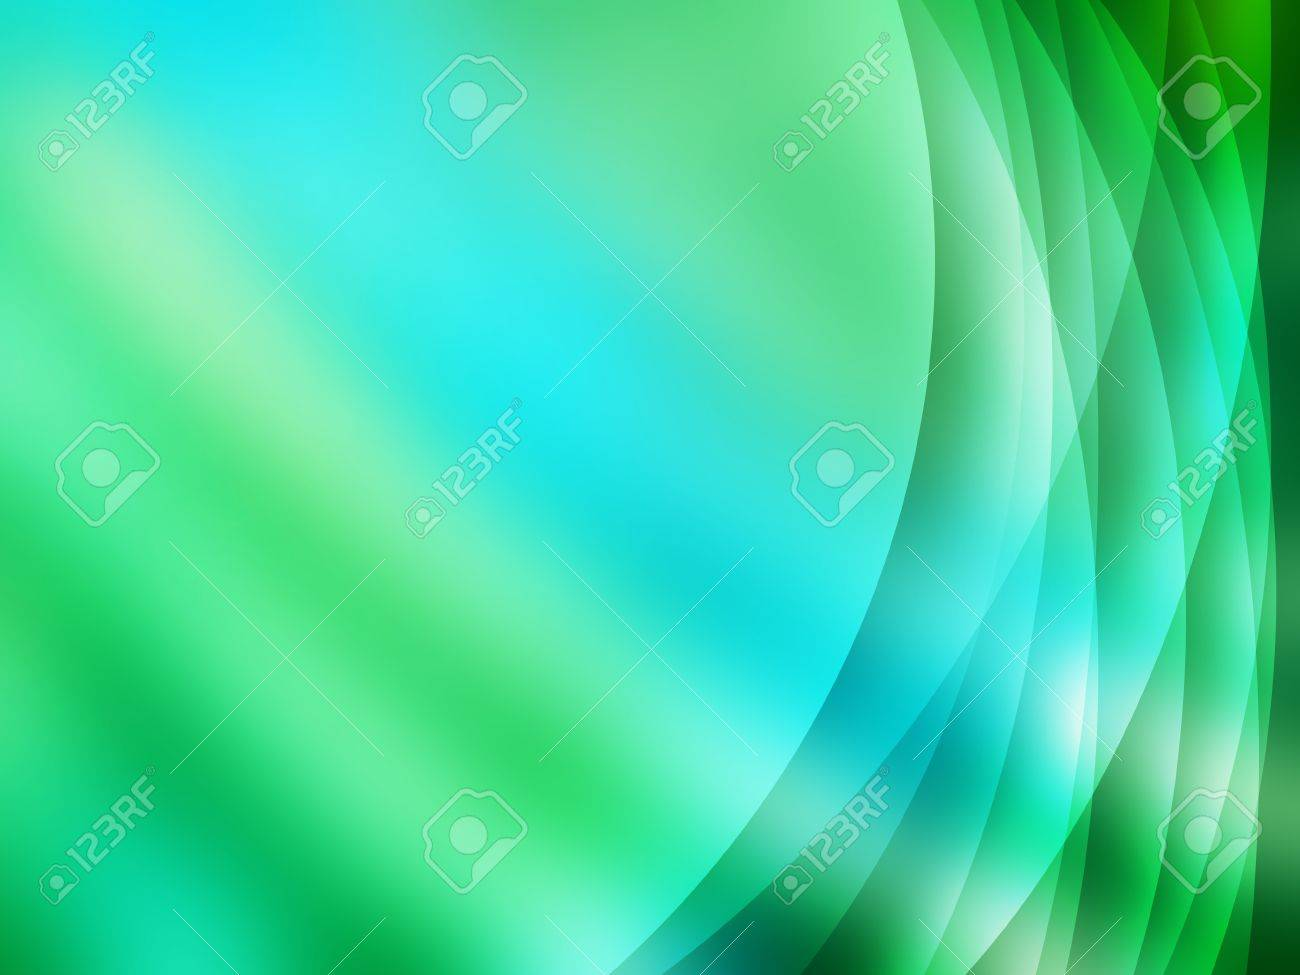 abstract background in green and turquoise tones Stock Photo - 16007387